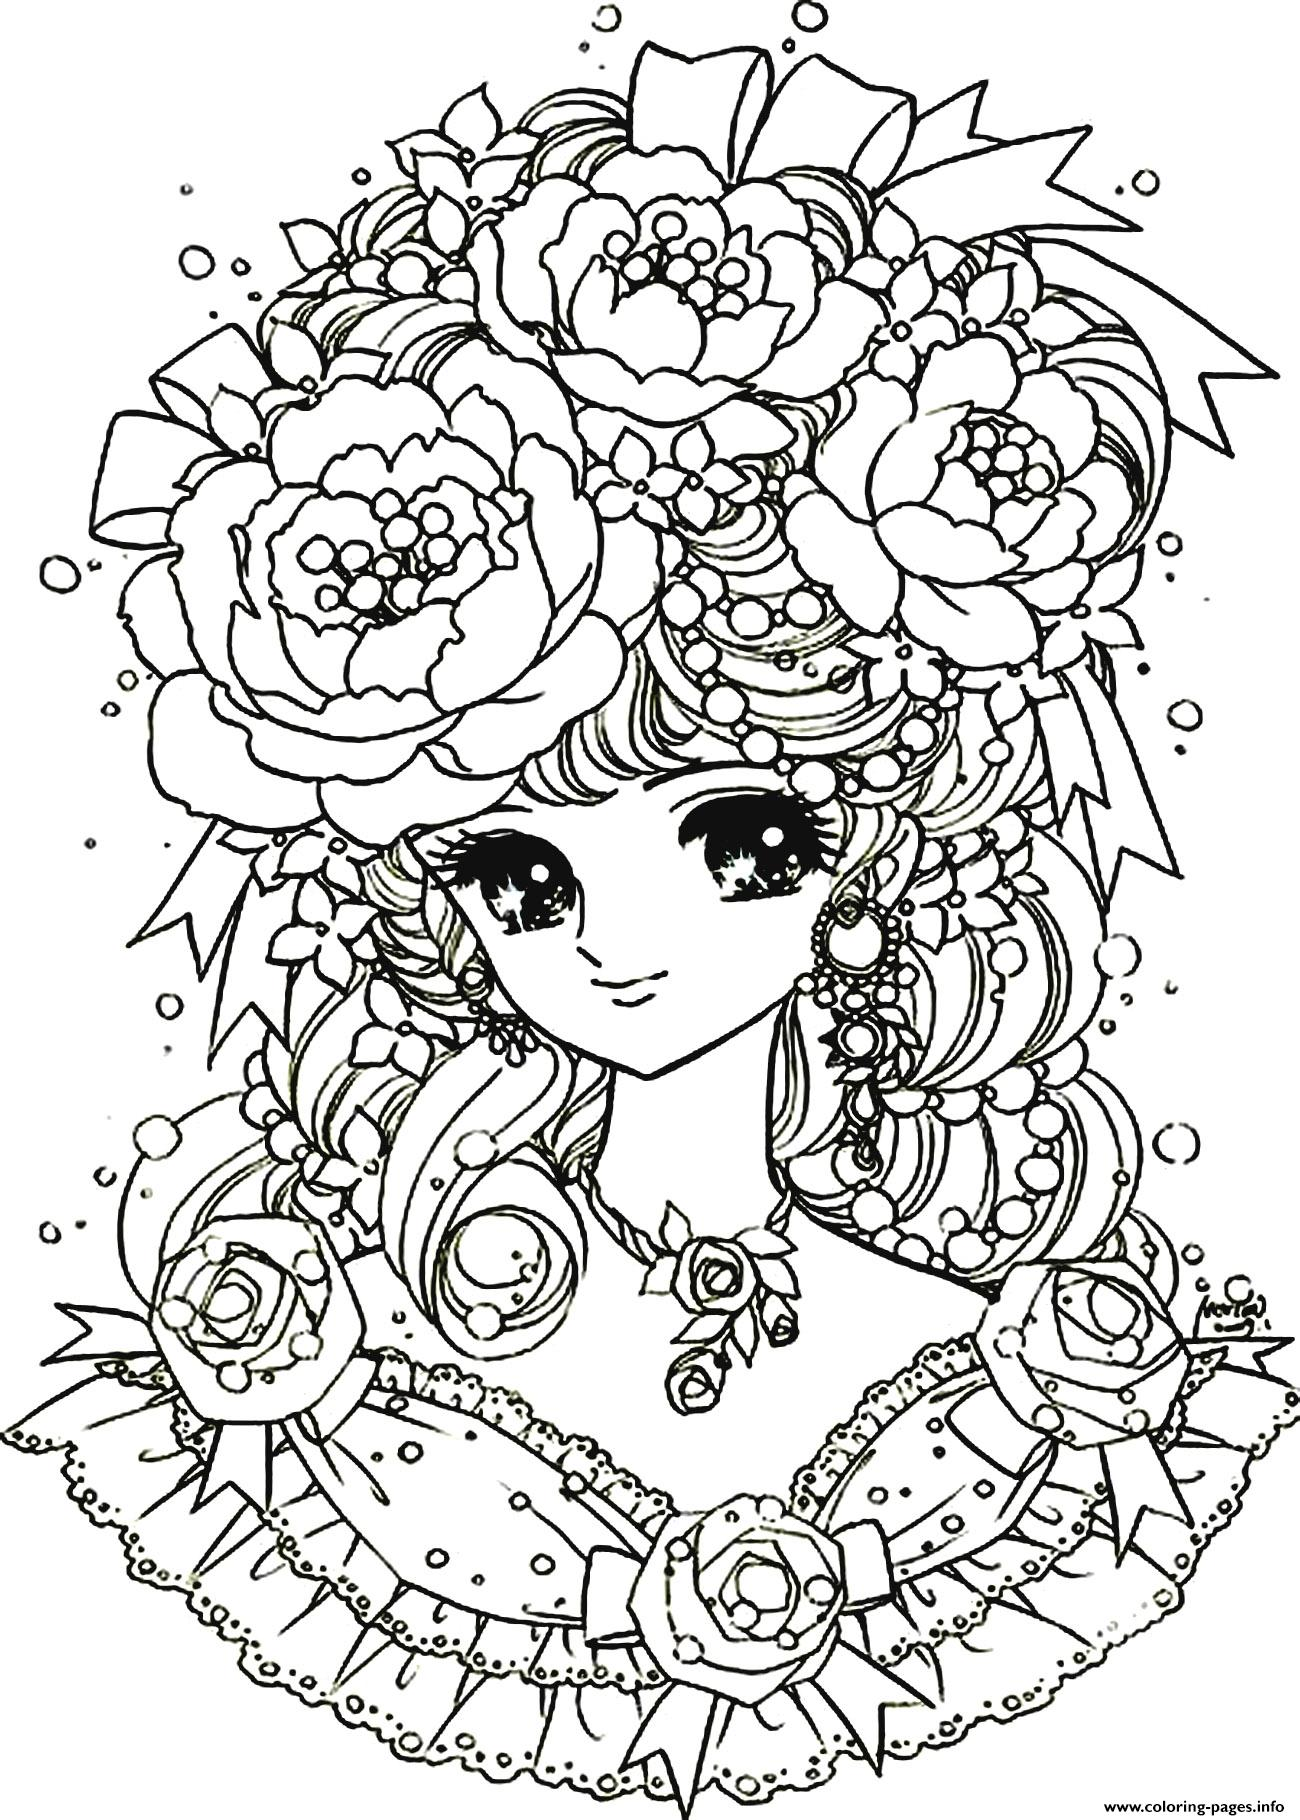 Coloring pages woman - Coloring Pages Woman 28